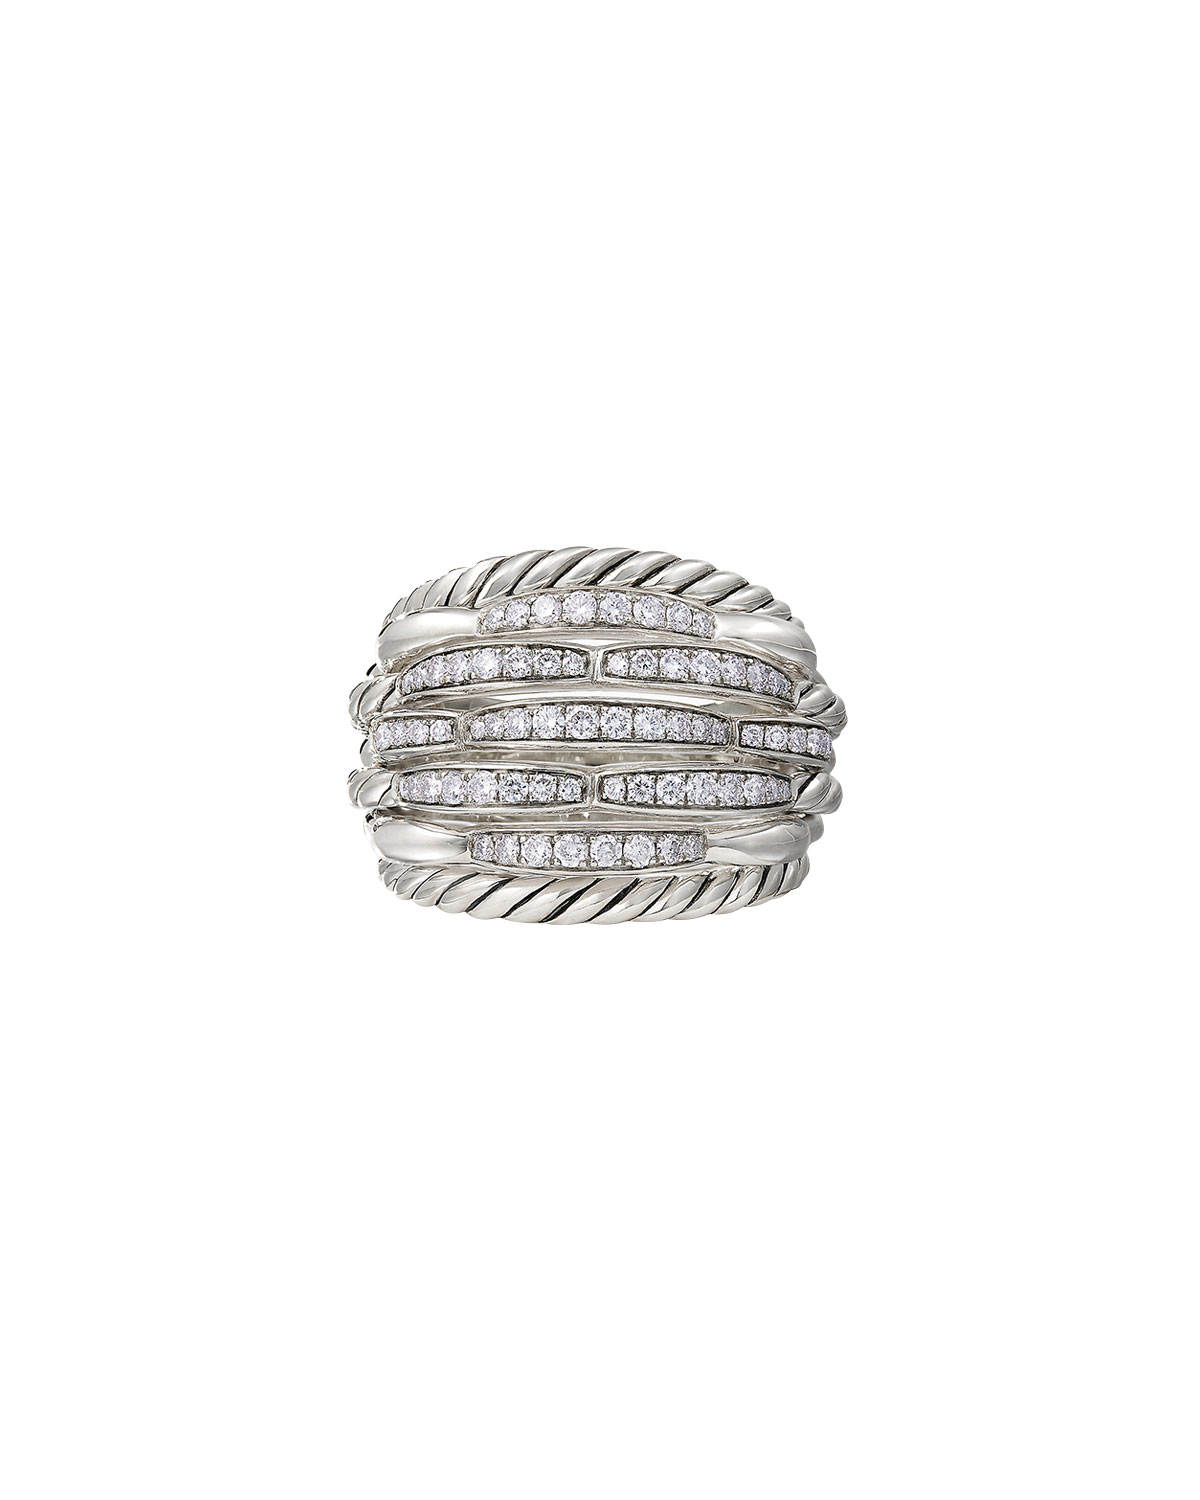 David Yurman Tides Large Dome & Diamond Pave Ring